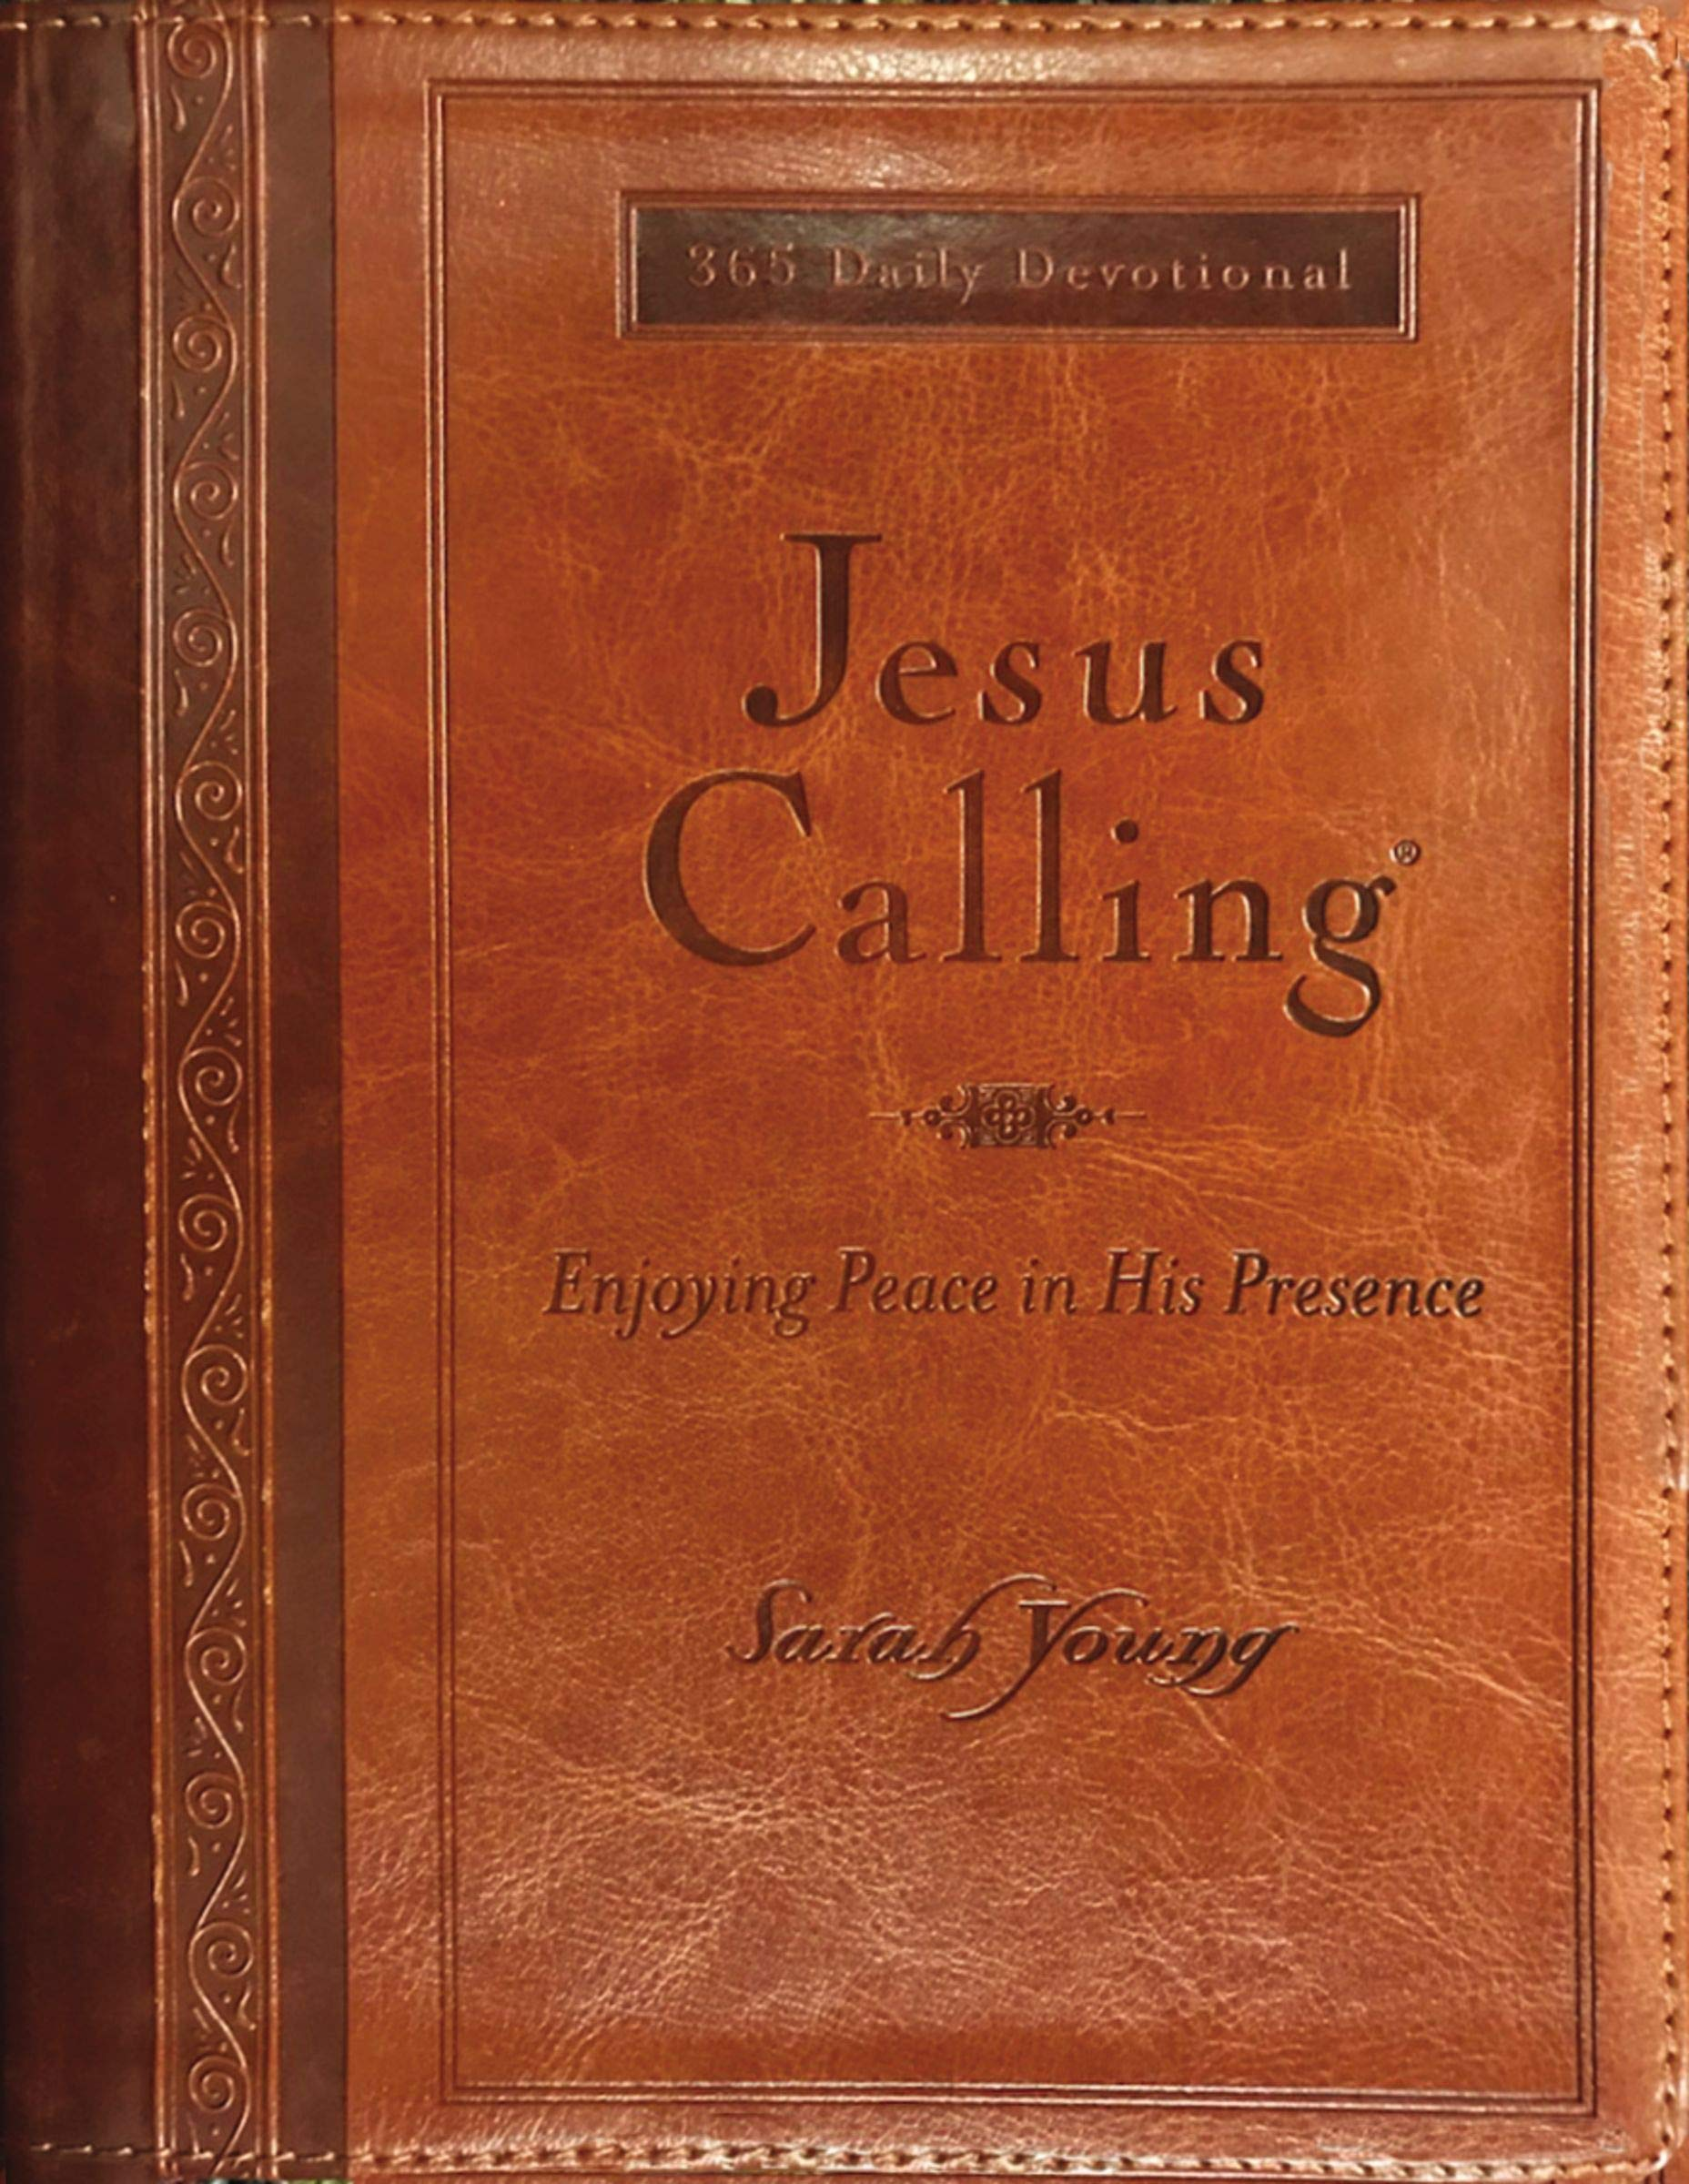 Jesus Calling (Large Print Leathersoft): Enjoying Peace in